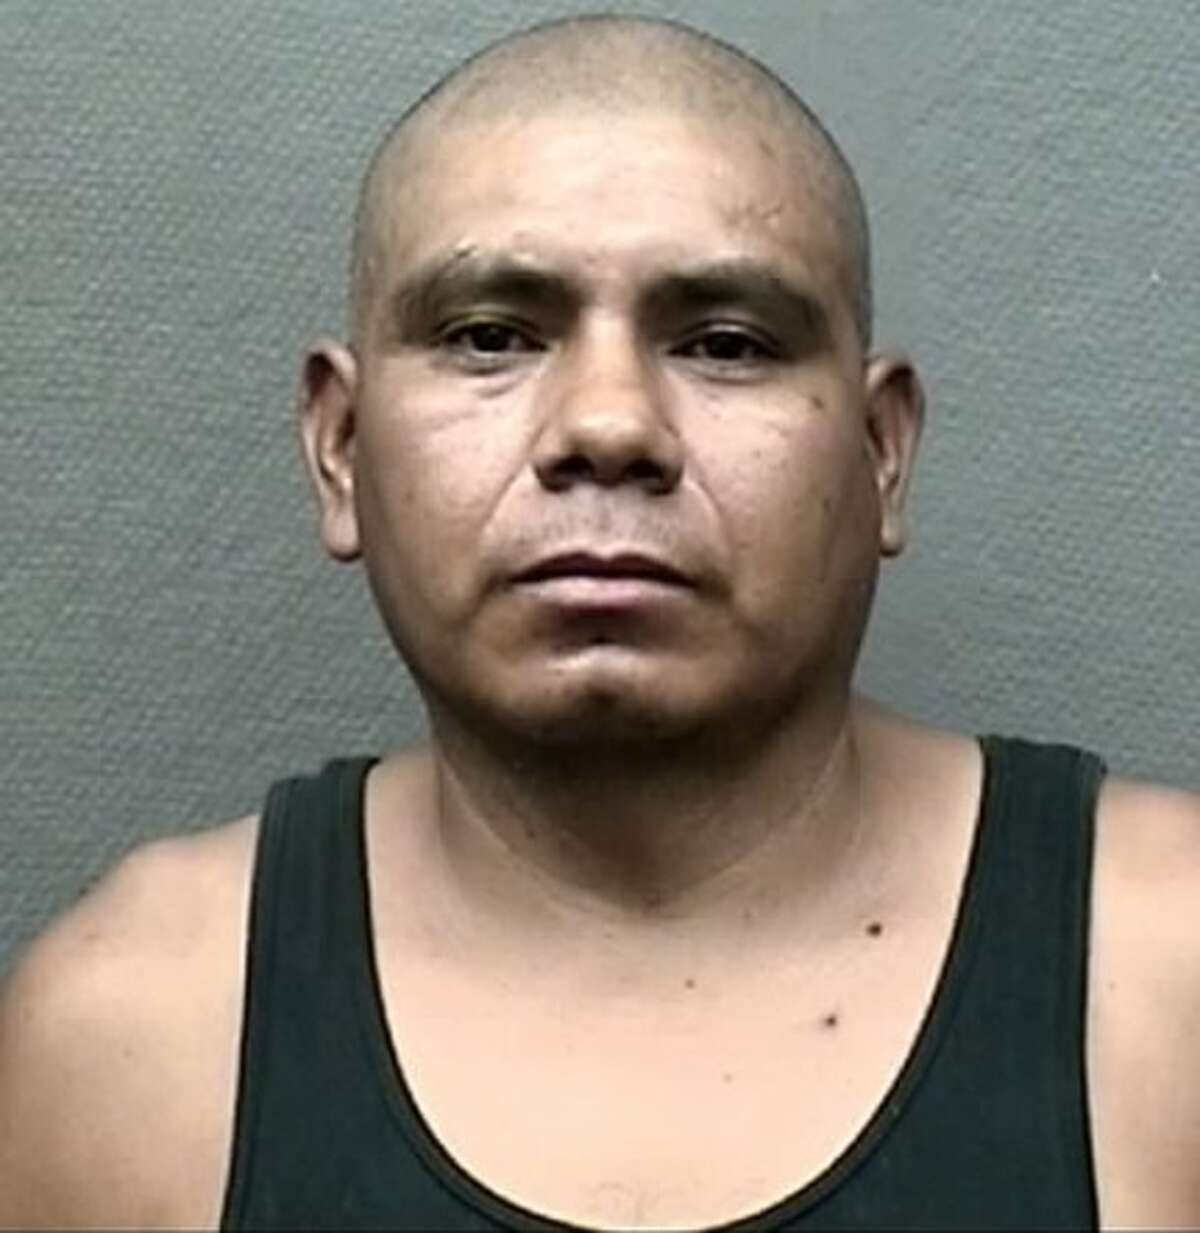 Fidel Morales, 42, was sentenced to 50 years in prison after being convicted of sexually abusing two young girls.